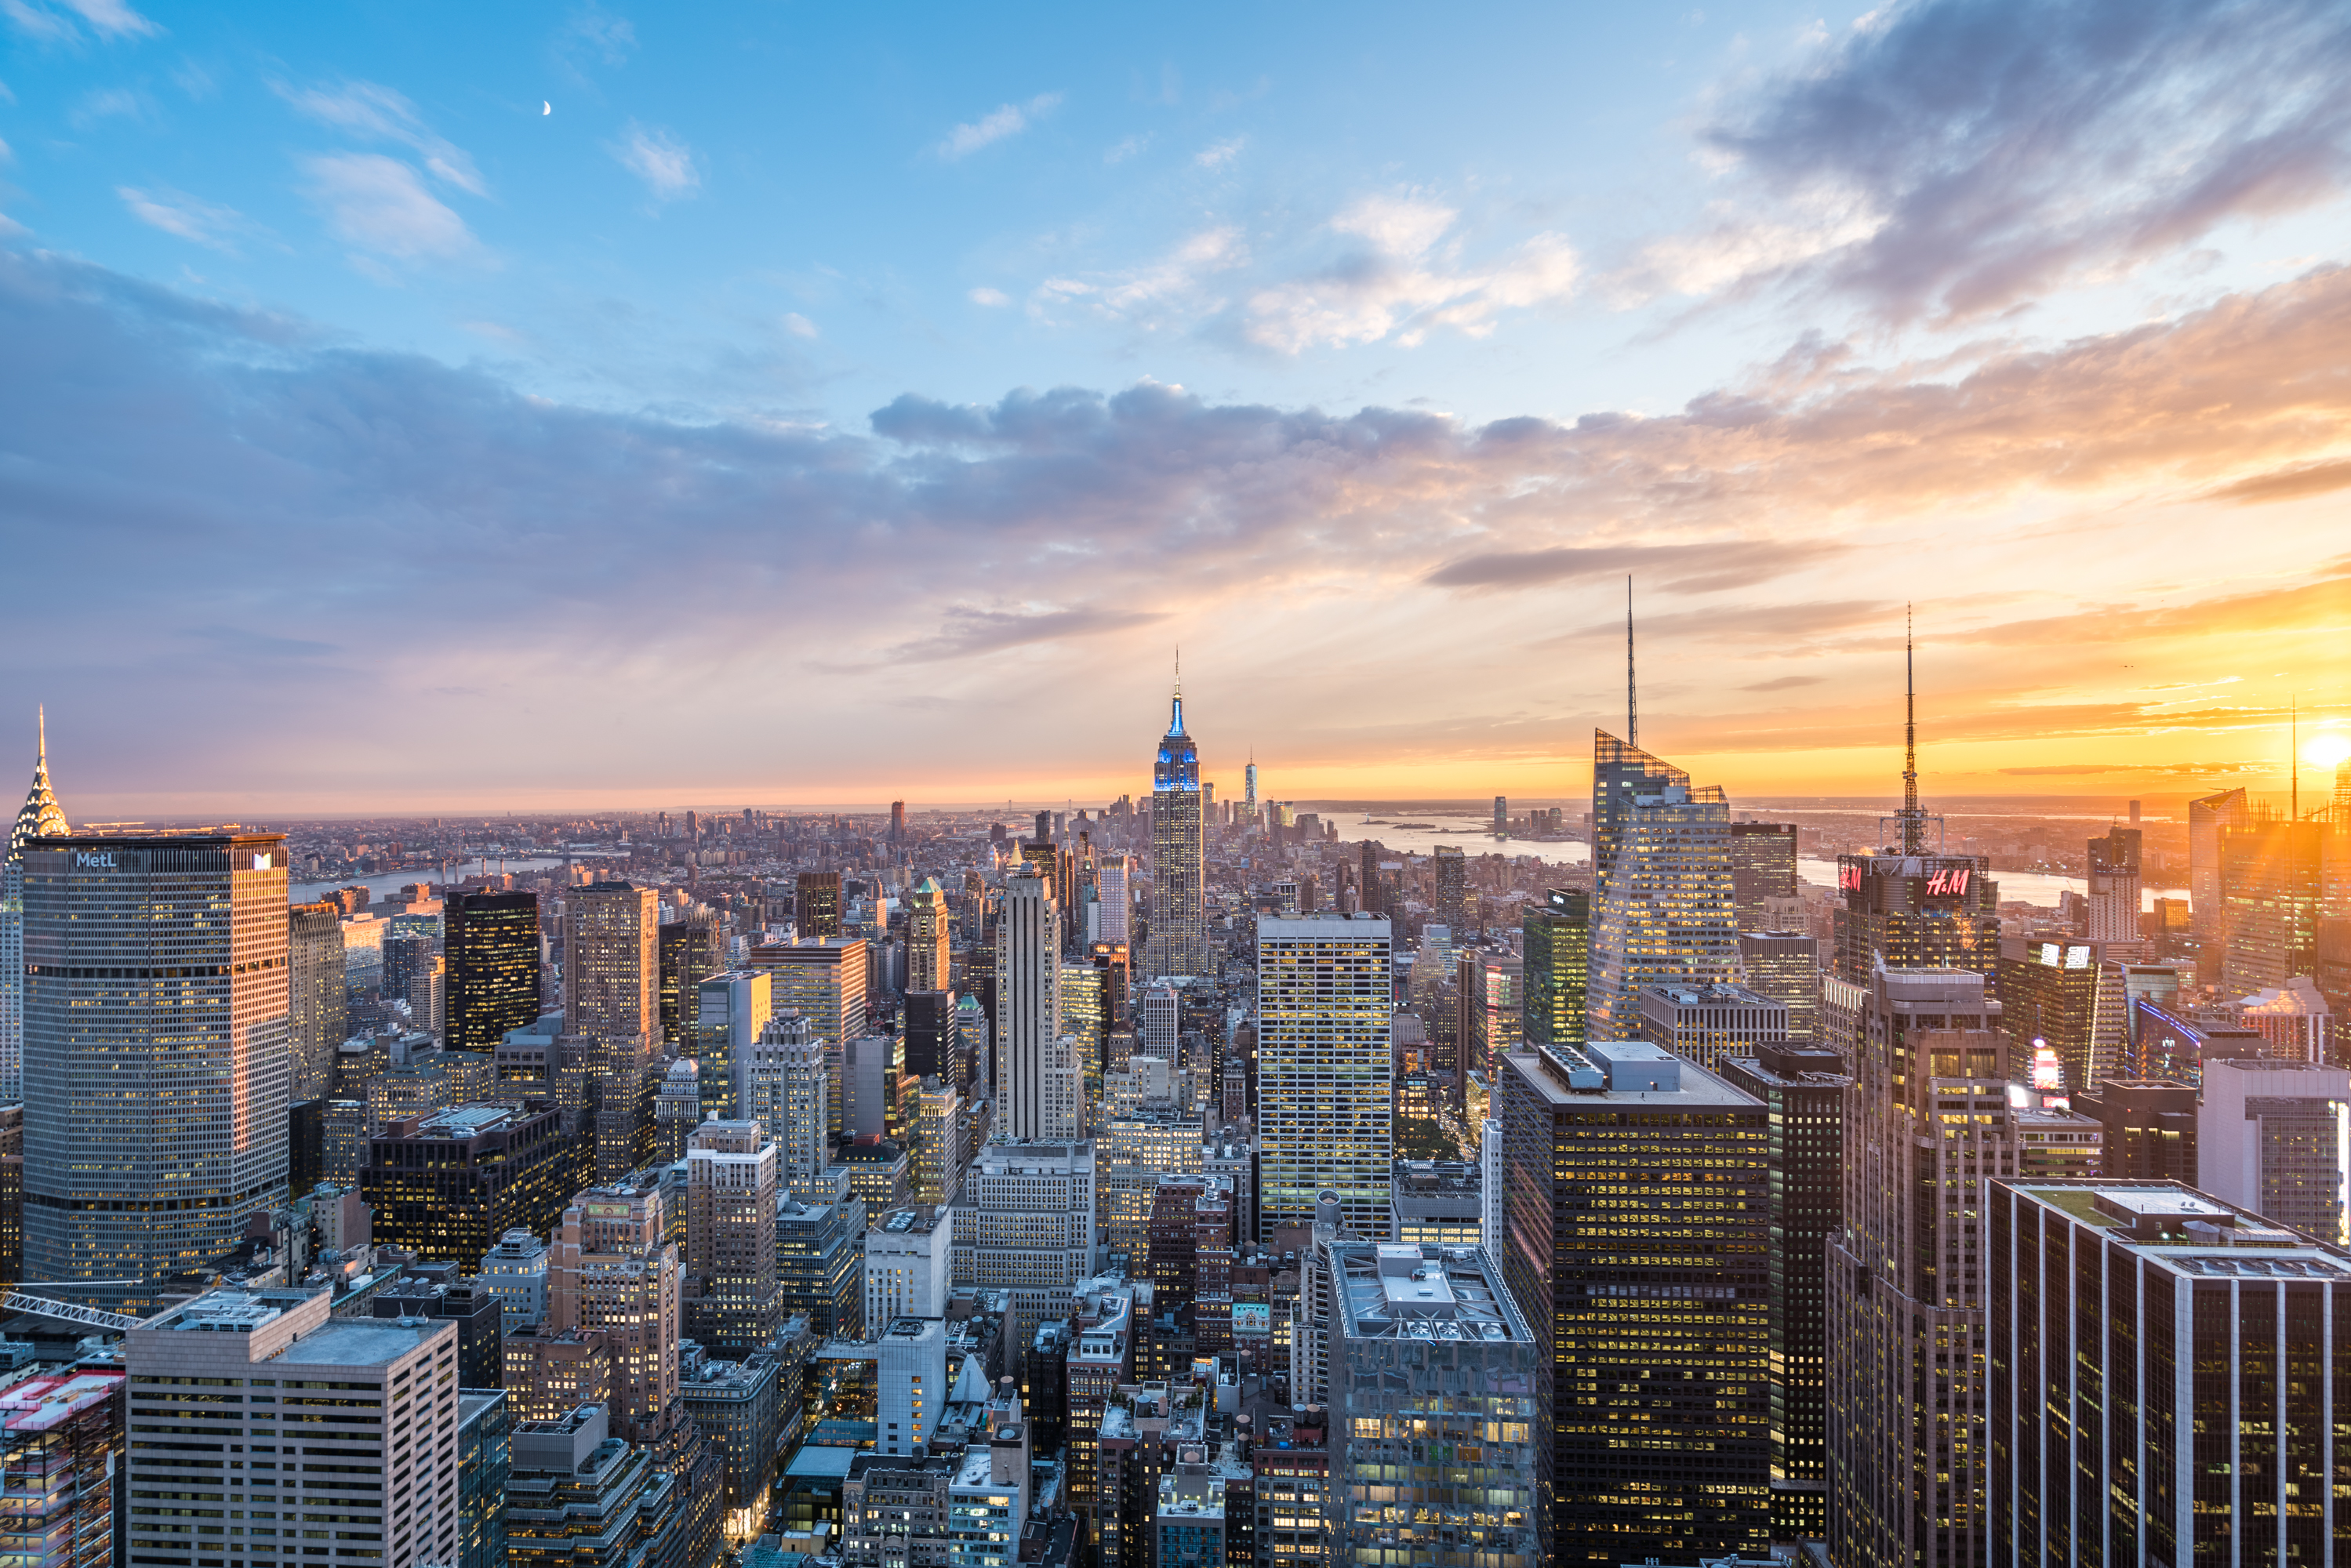 view From the Rockefeller Centre New York [David Tan]